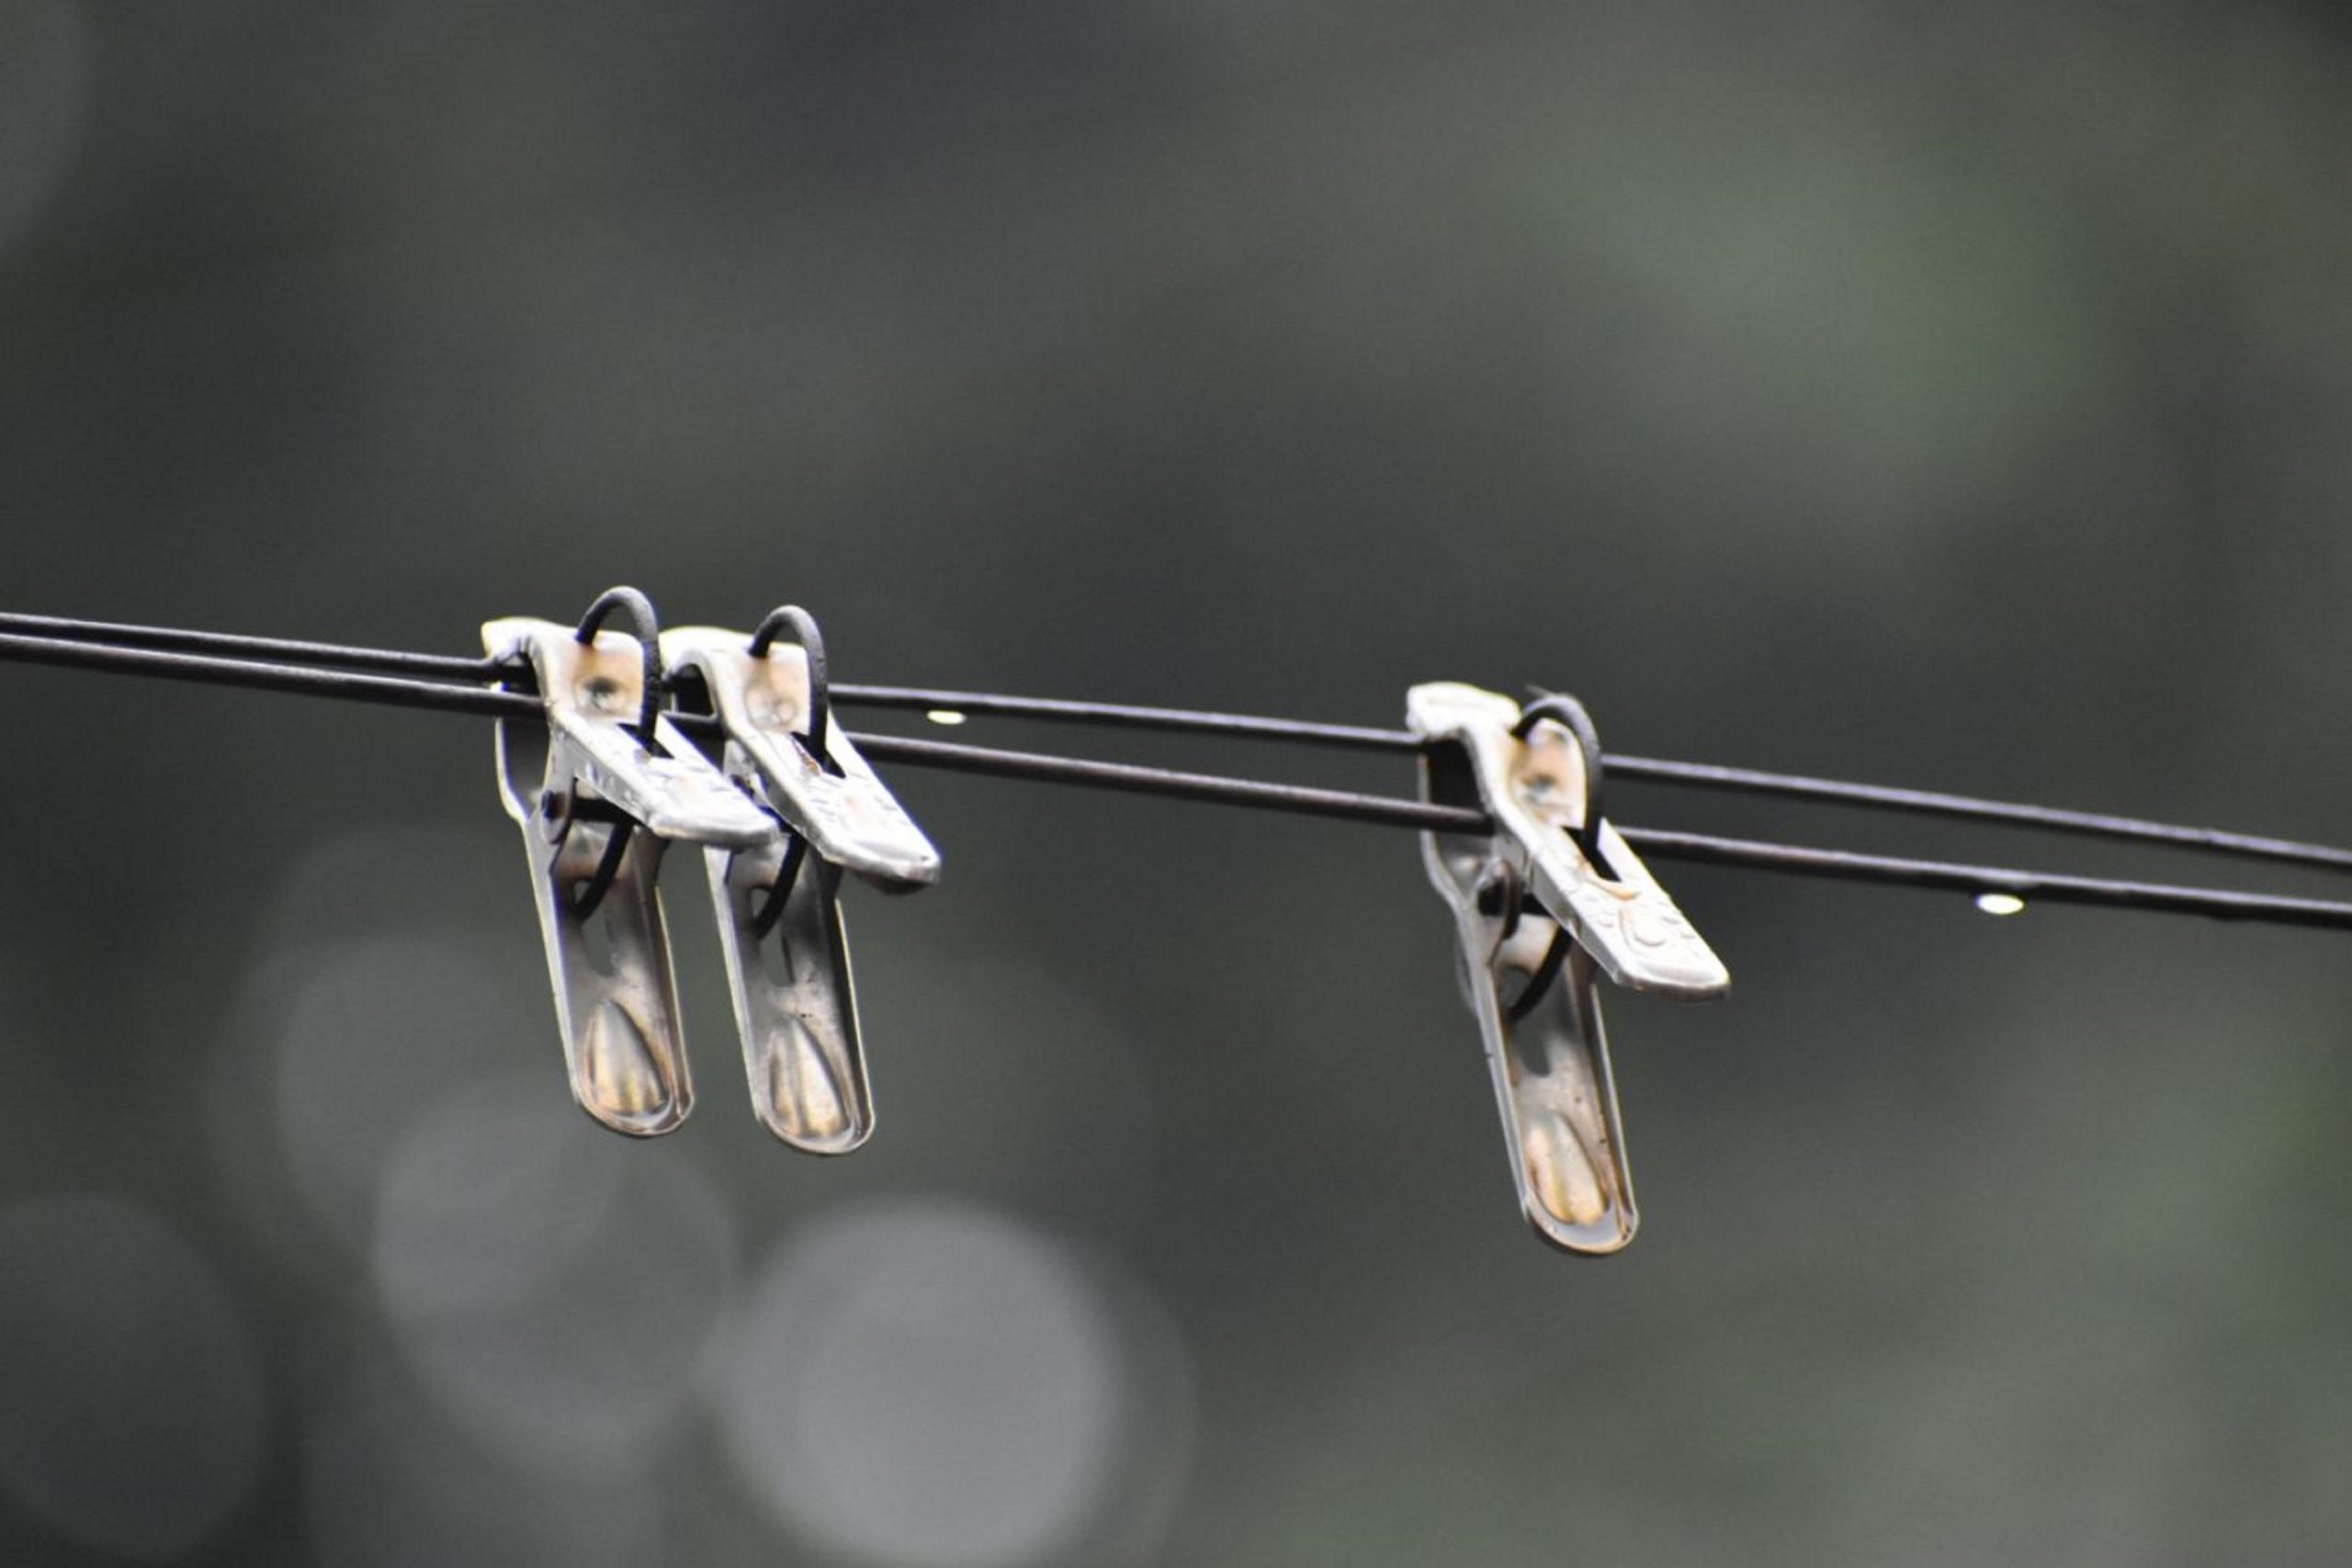 cloth pegs on clothes line